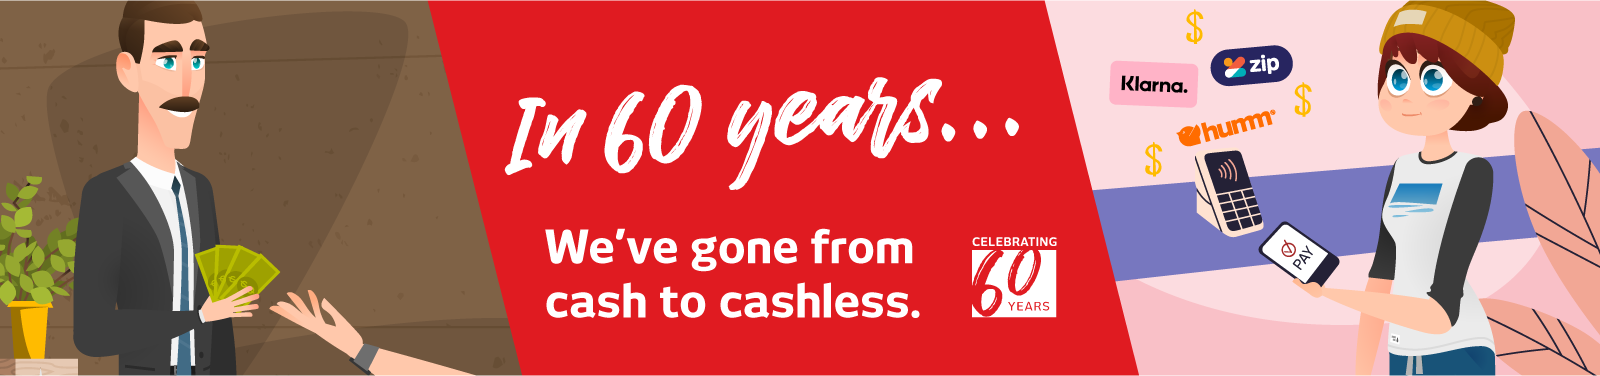 Celebrating 60 Years Cash to Cashless